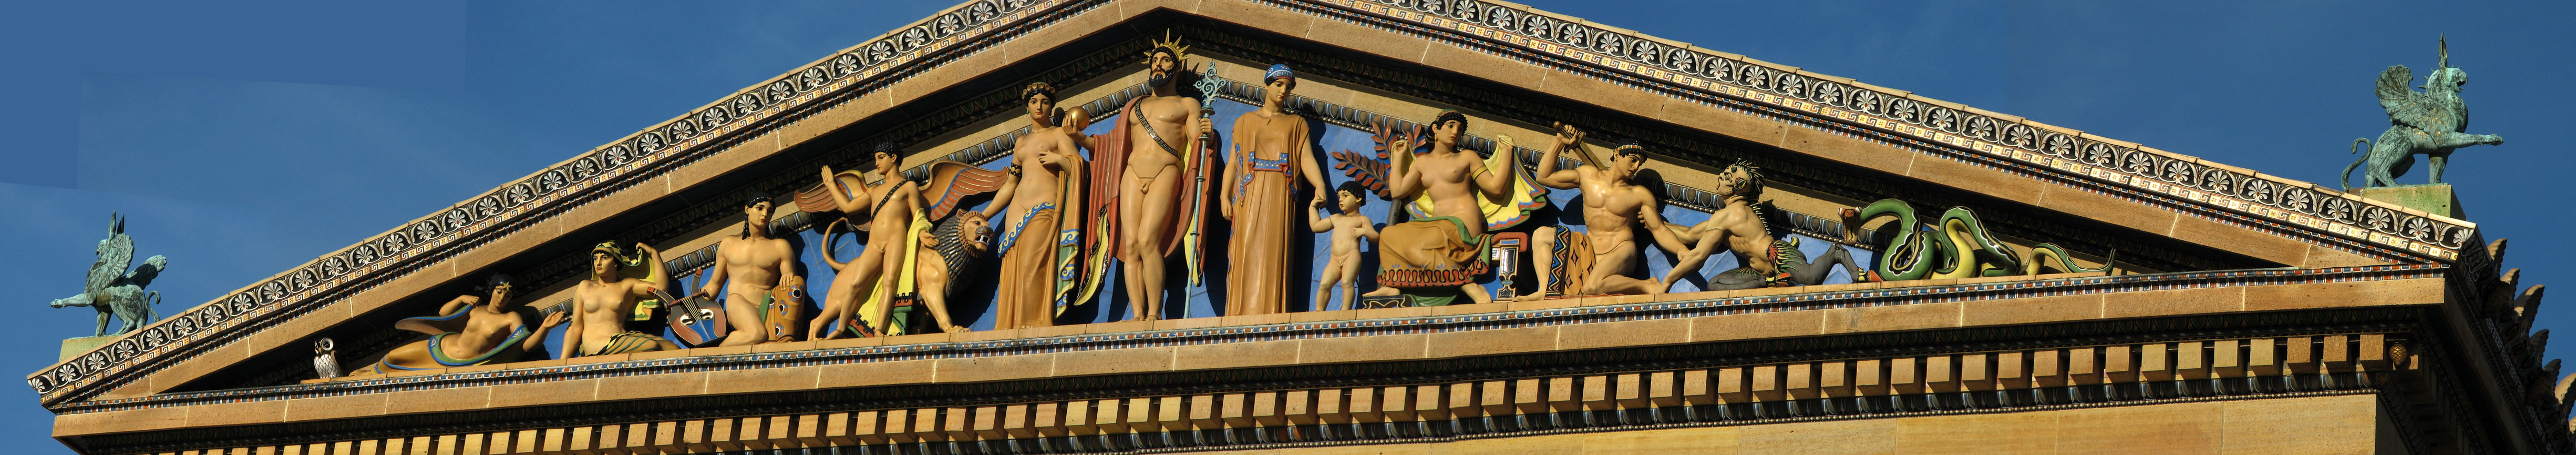 Philadelphia Art Museum terra cotta pediment using polychrome glazing